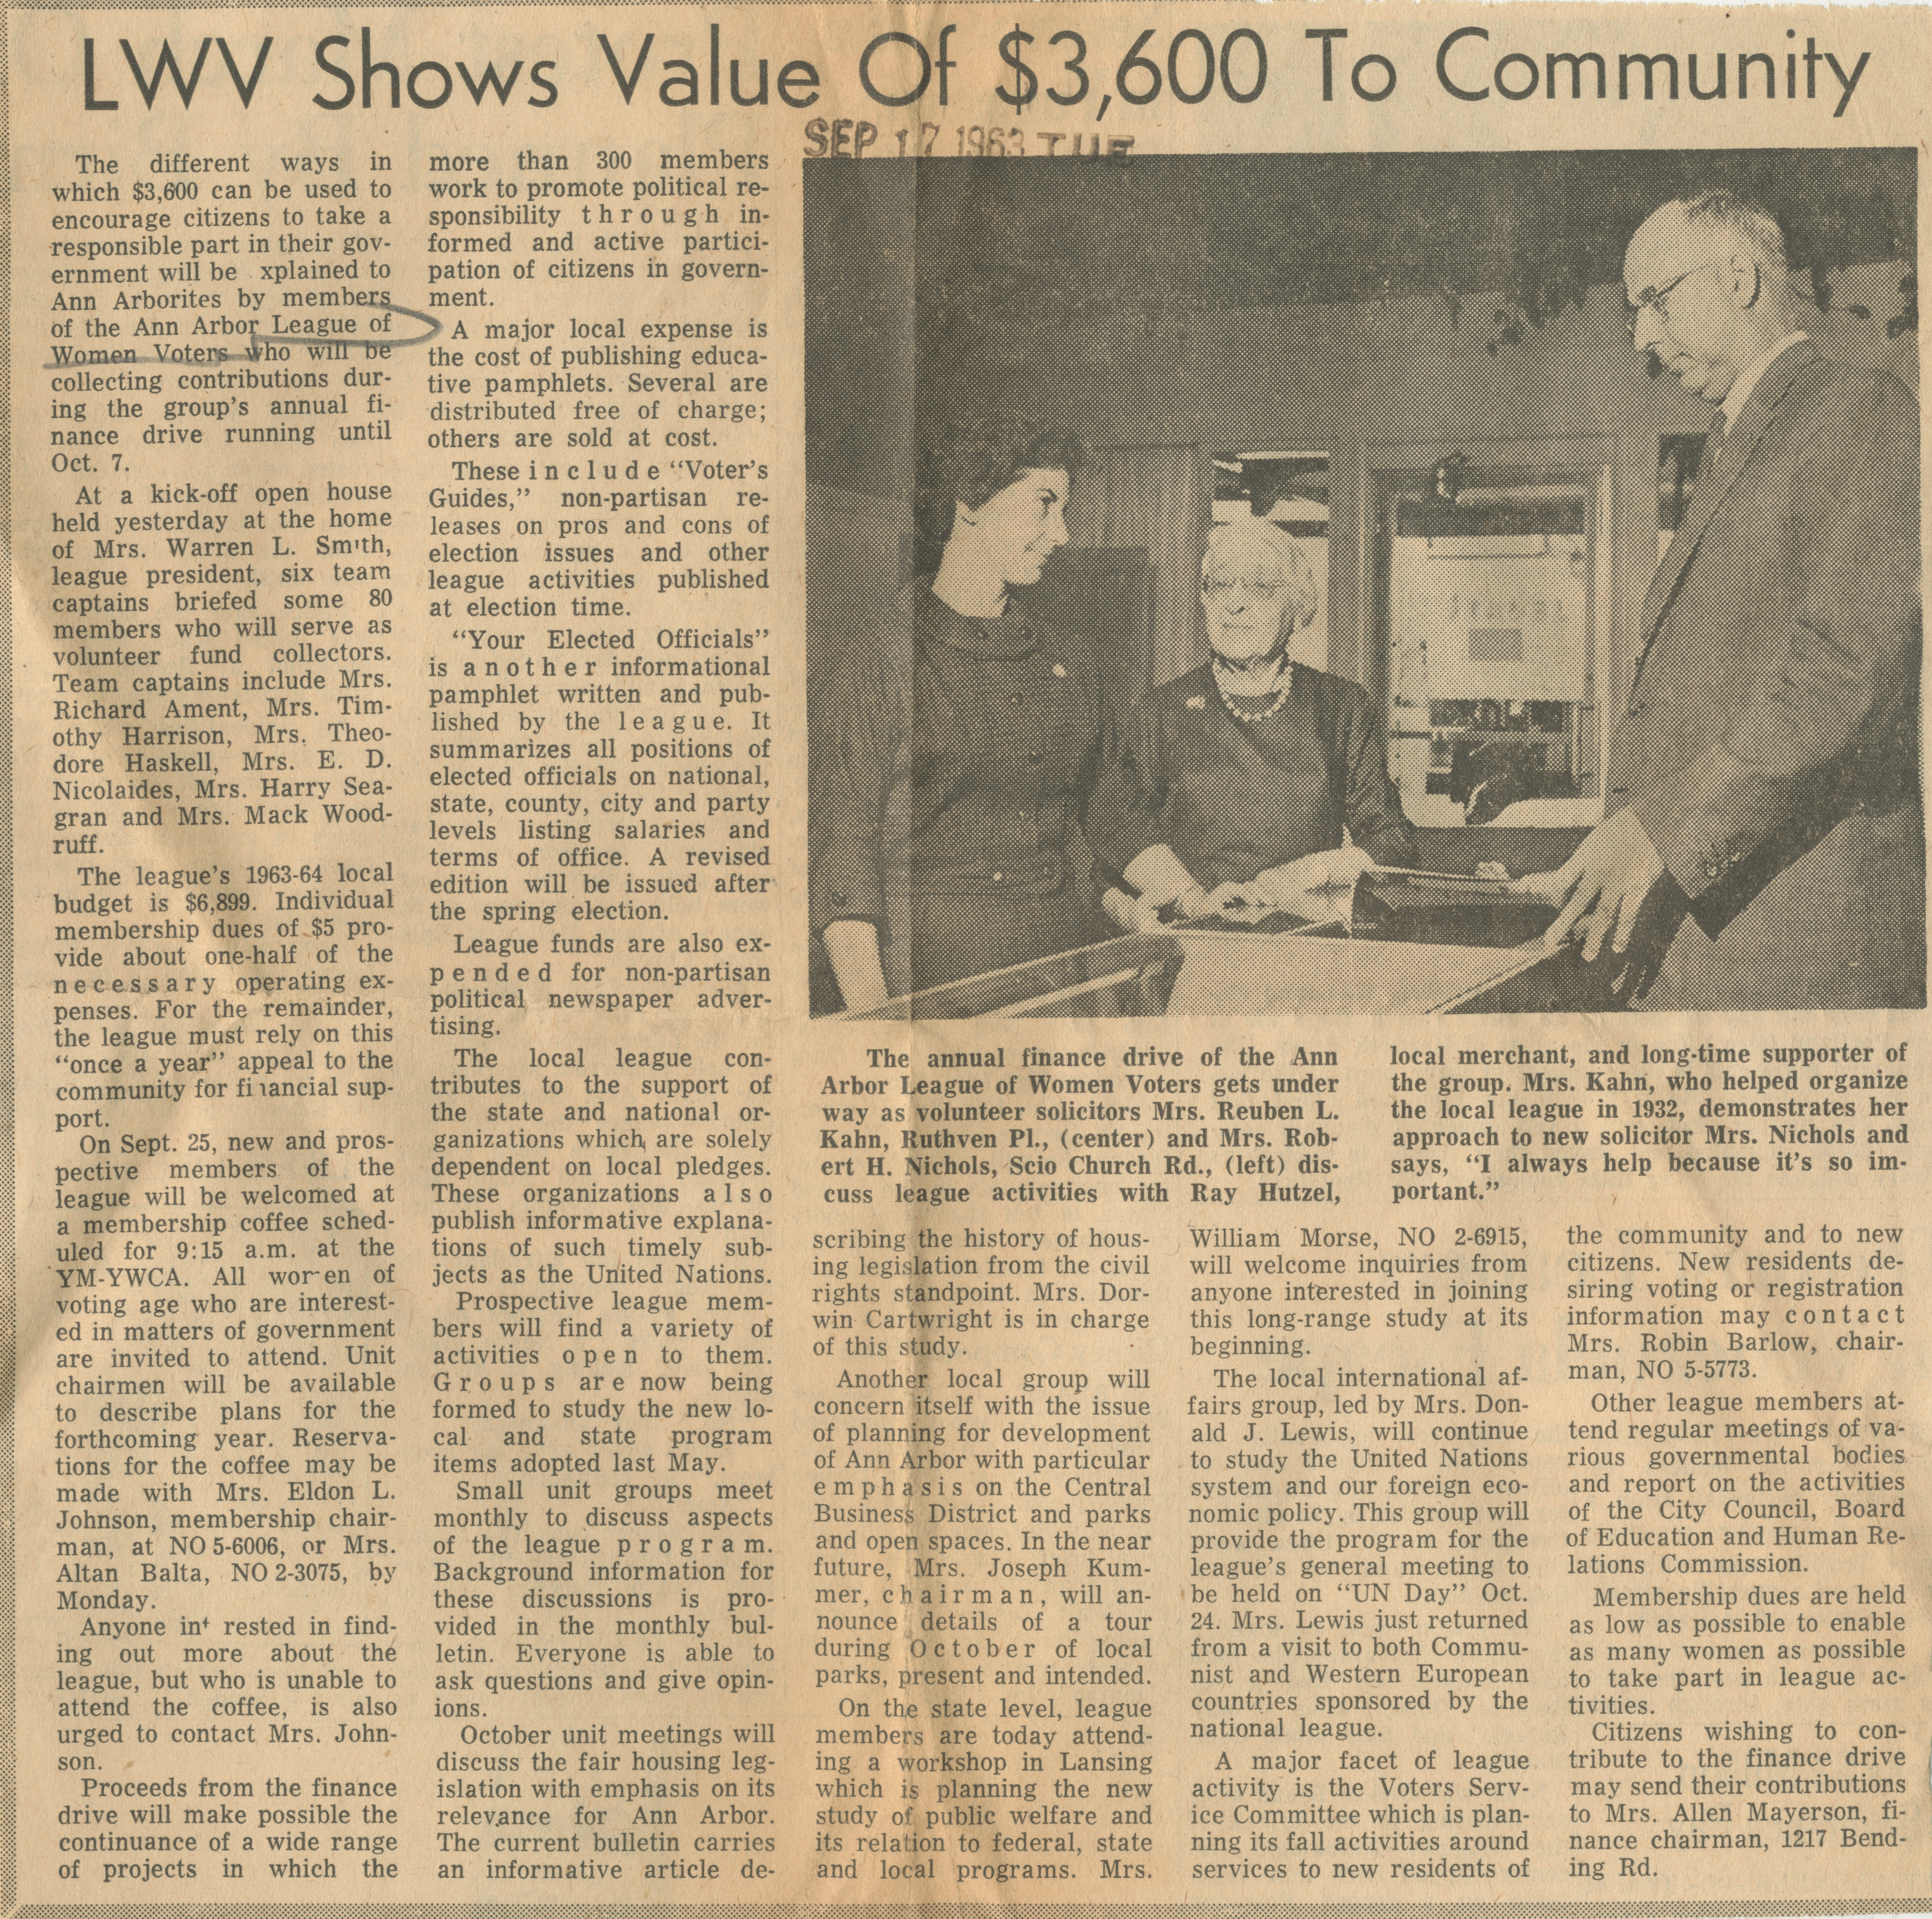 LWV Shows Value Of $3,600 To Community image